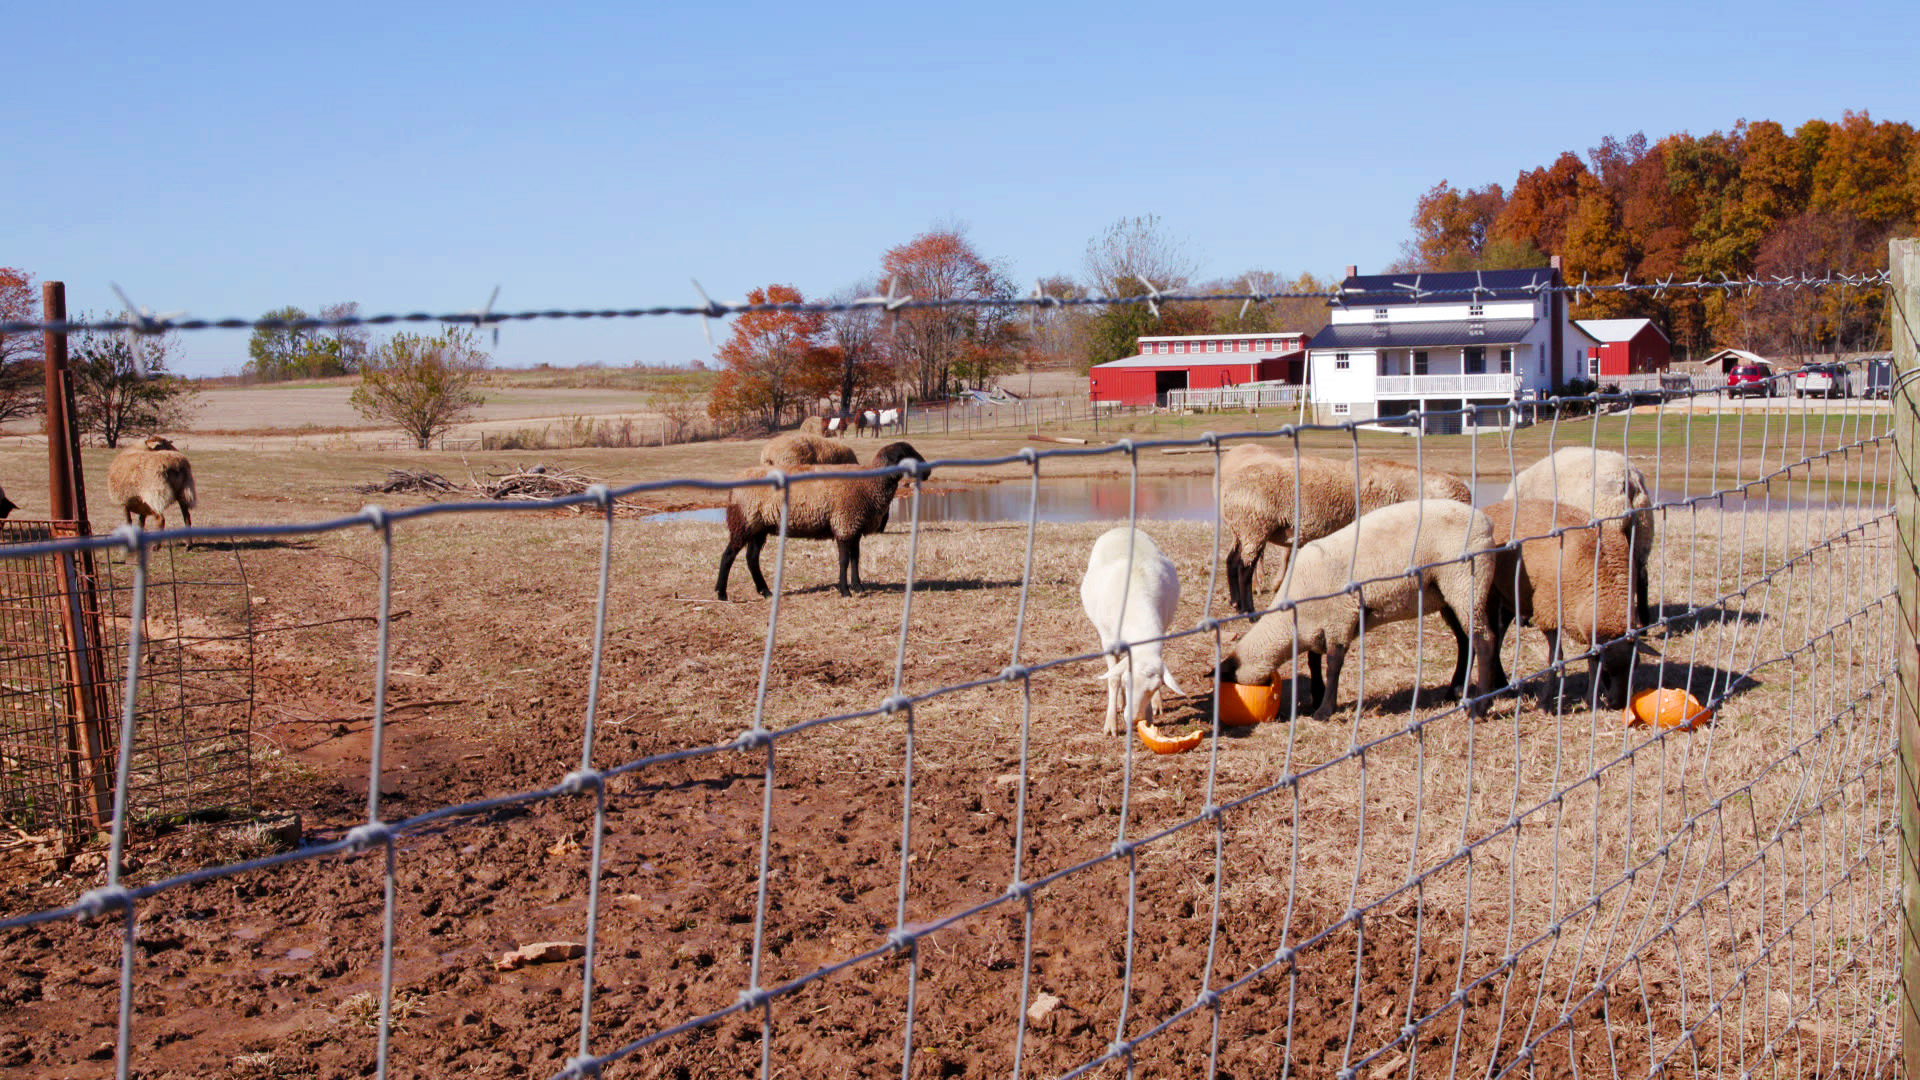 Hall's sheep in their pen.